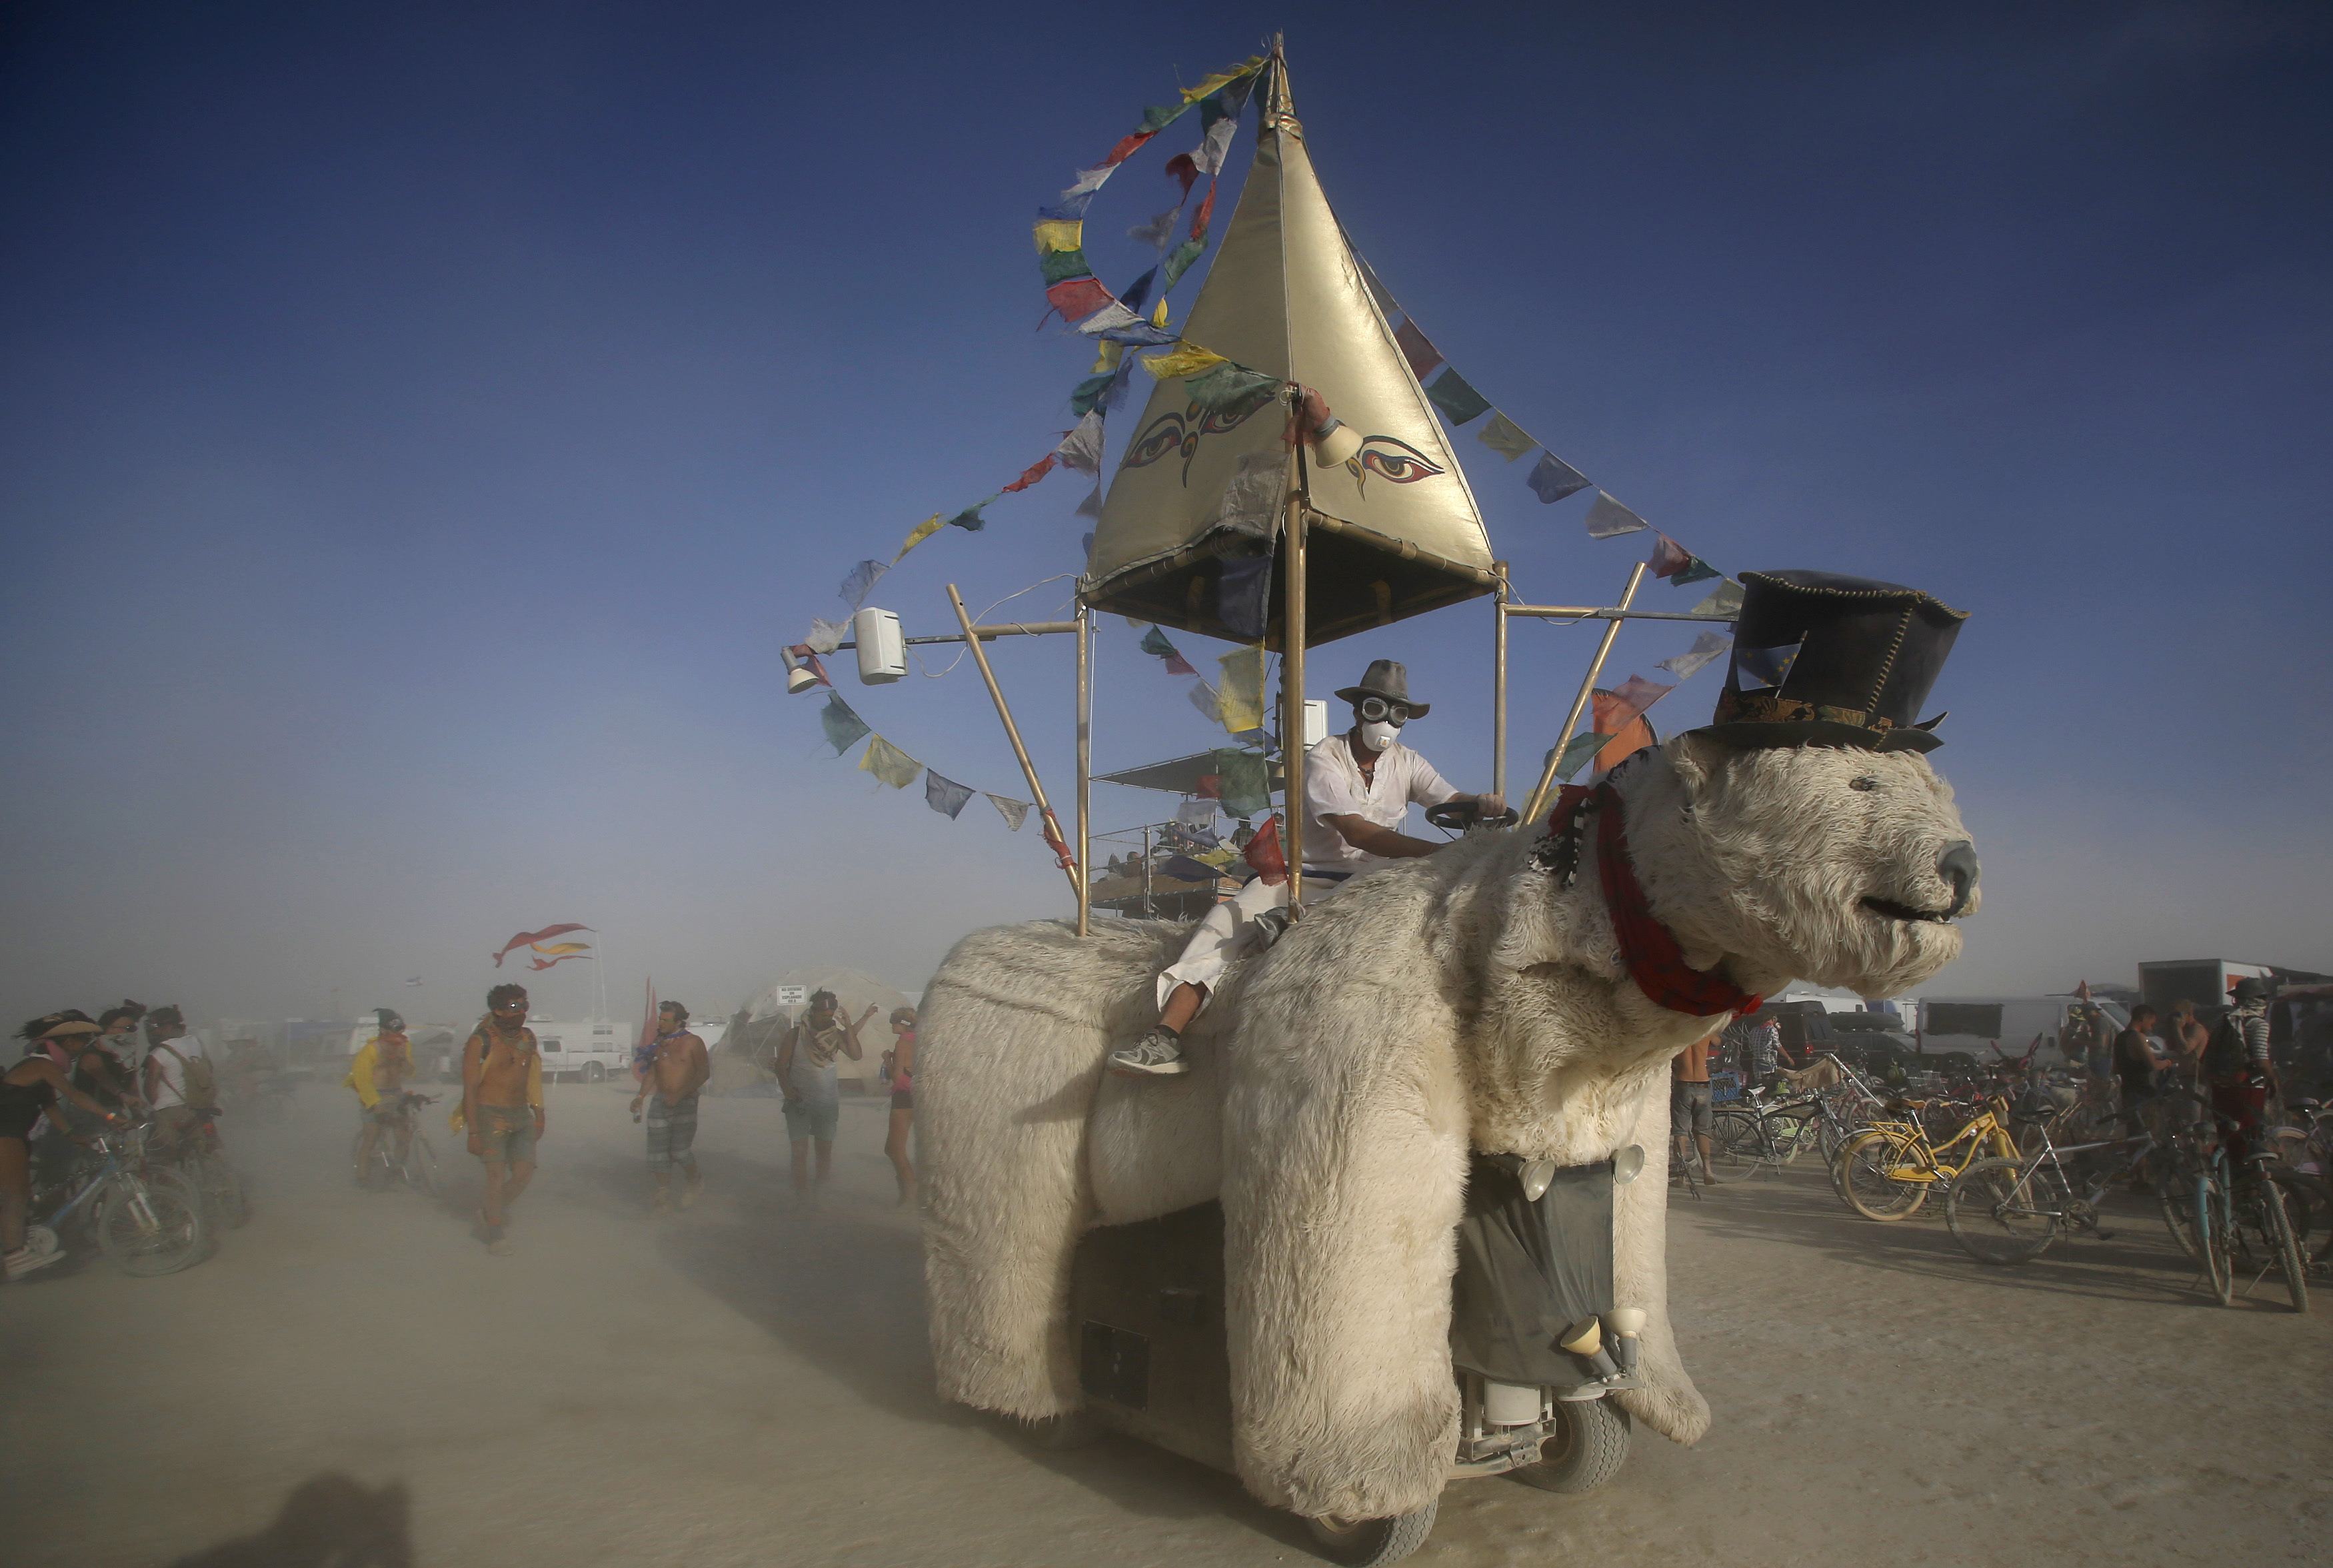 Another Mutant Vehicle crosses the dusty desert at Burning Man, where the vehicles serve as roaming art installations. Photo by Jim Urquhart/Reuters